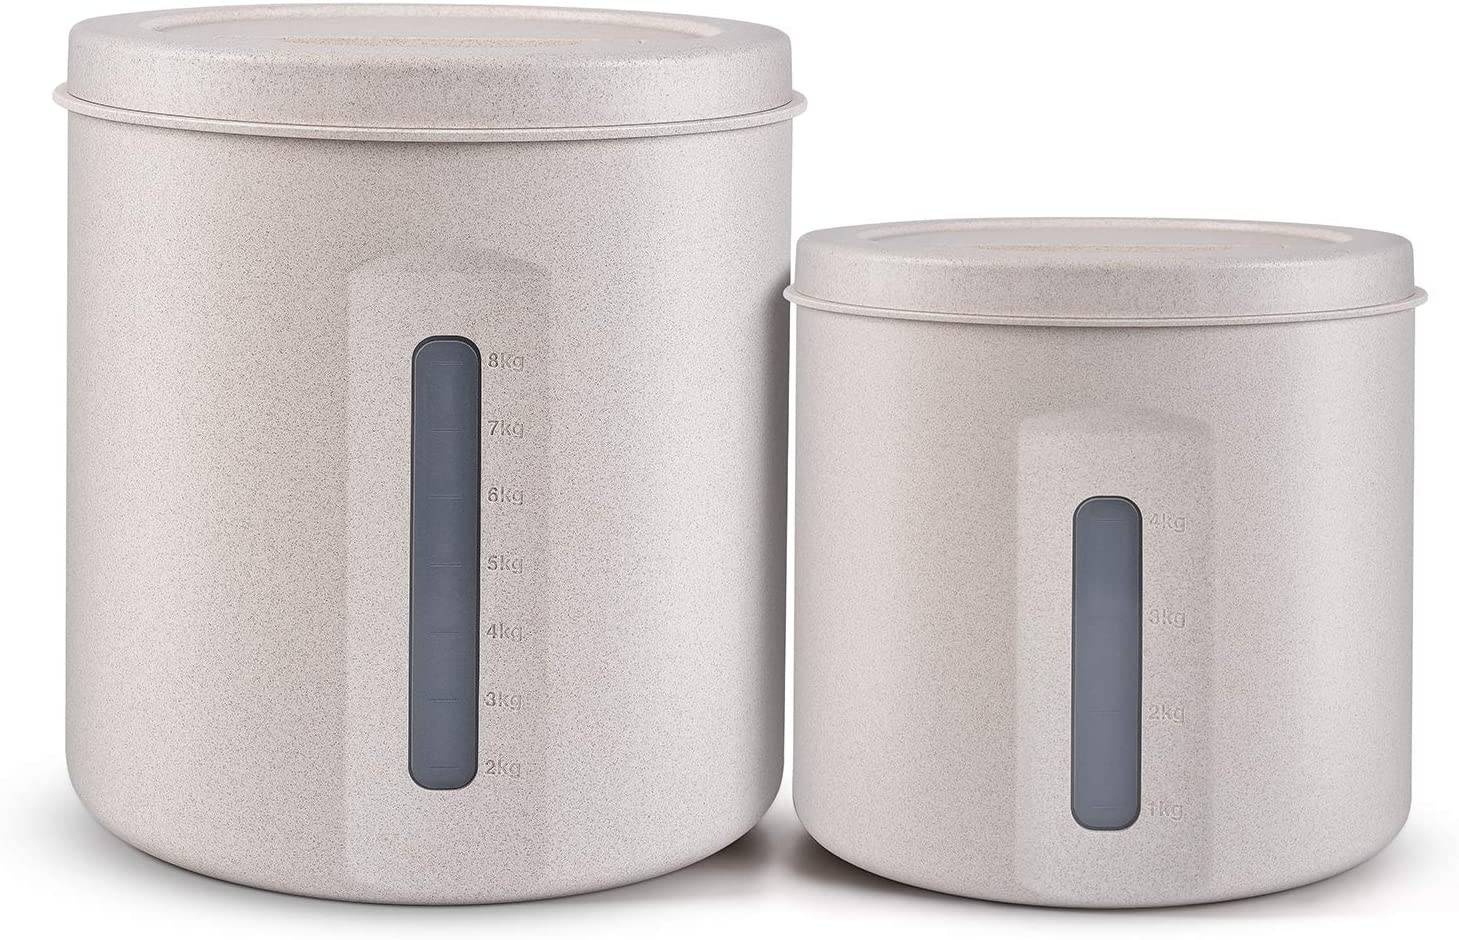 Environmental Wheat Straw Sealed Food Storage Container for Kitchen Rice Flour Soybean Grain Cereal (White, ((169oz / 5L and 338oz / 10L),Pack-2))